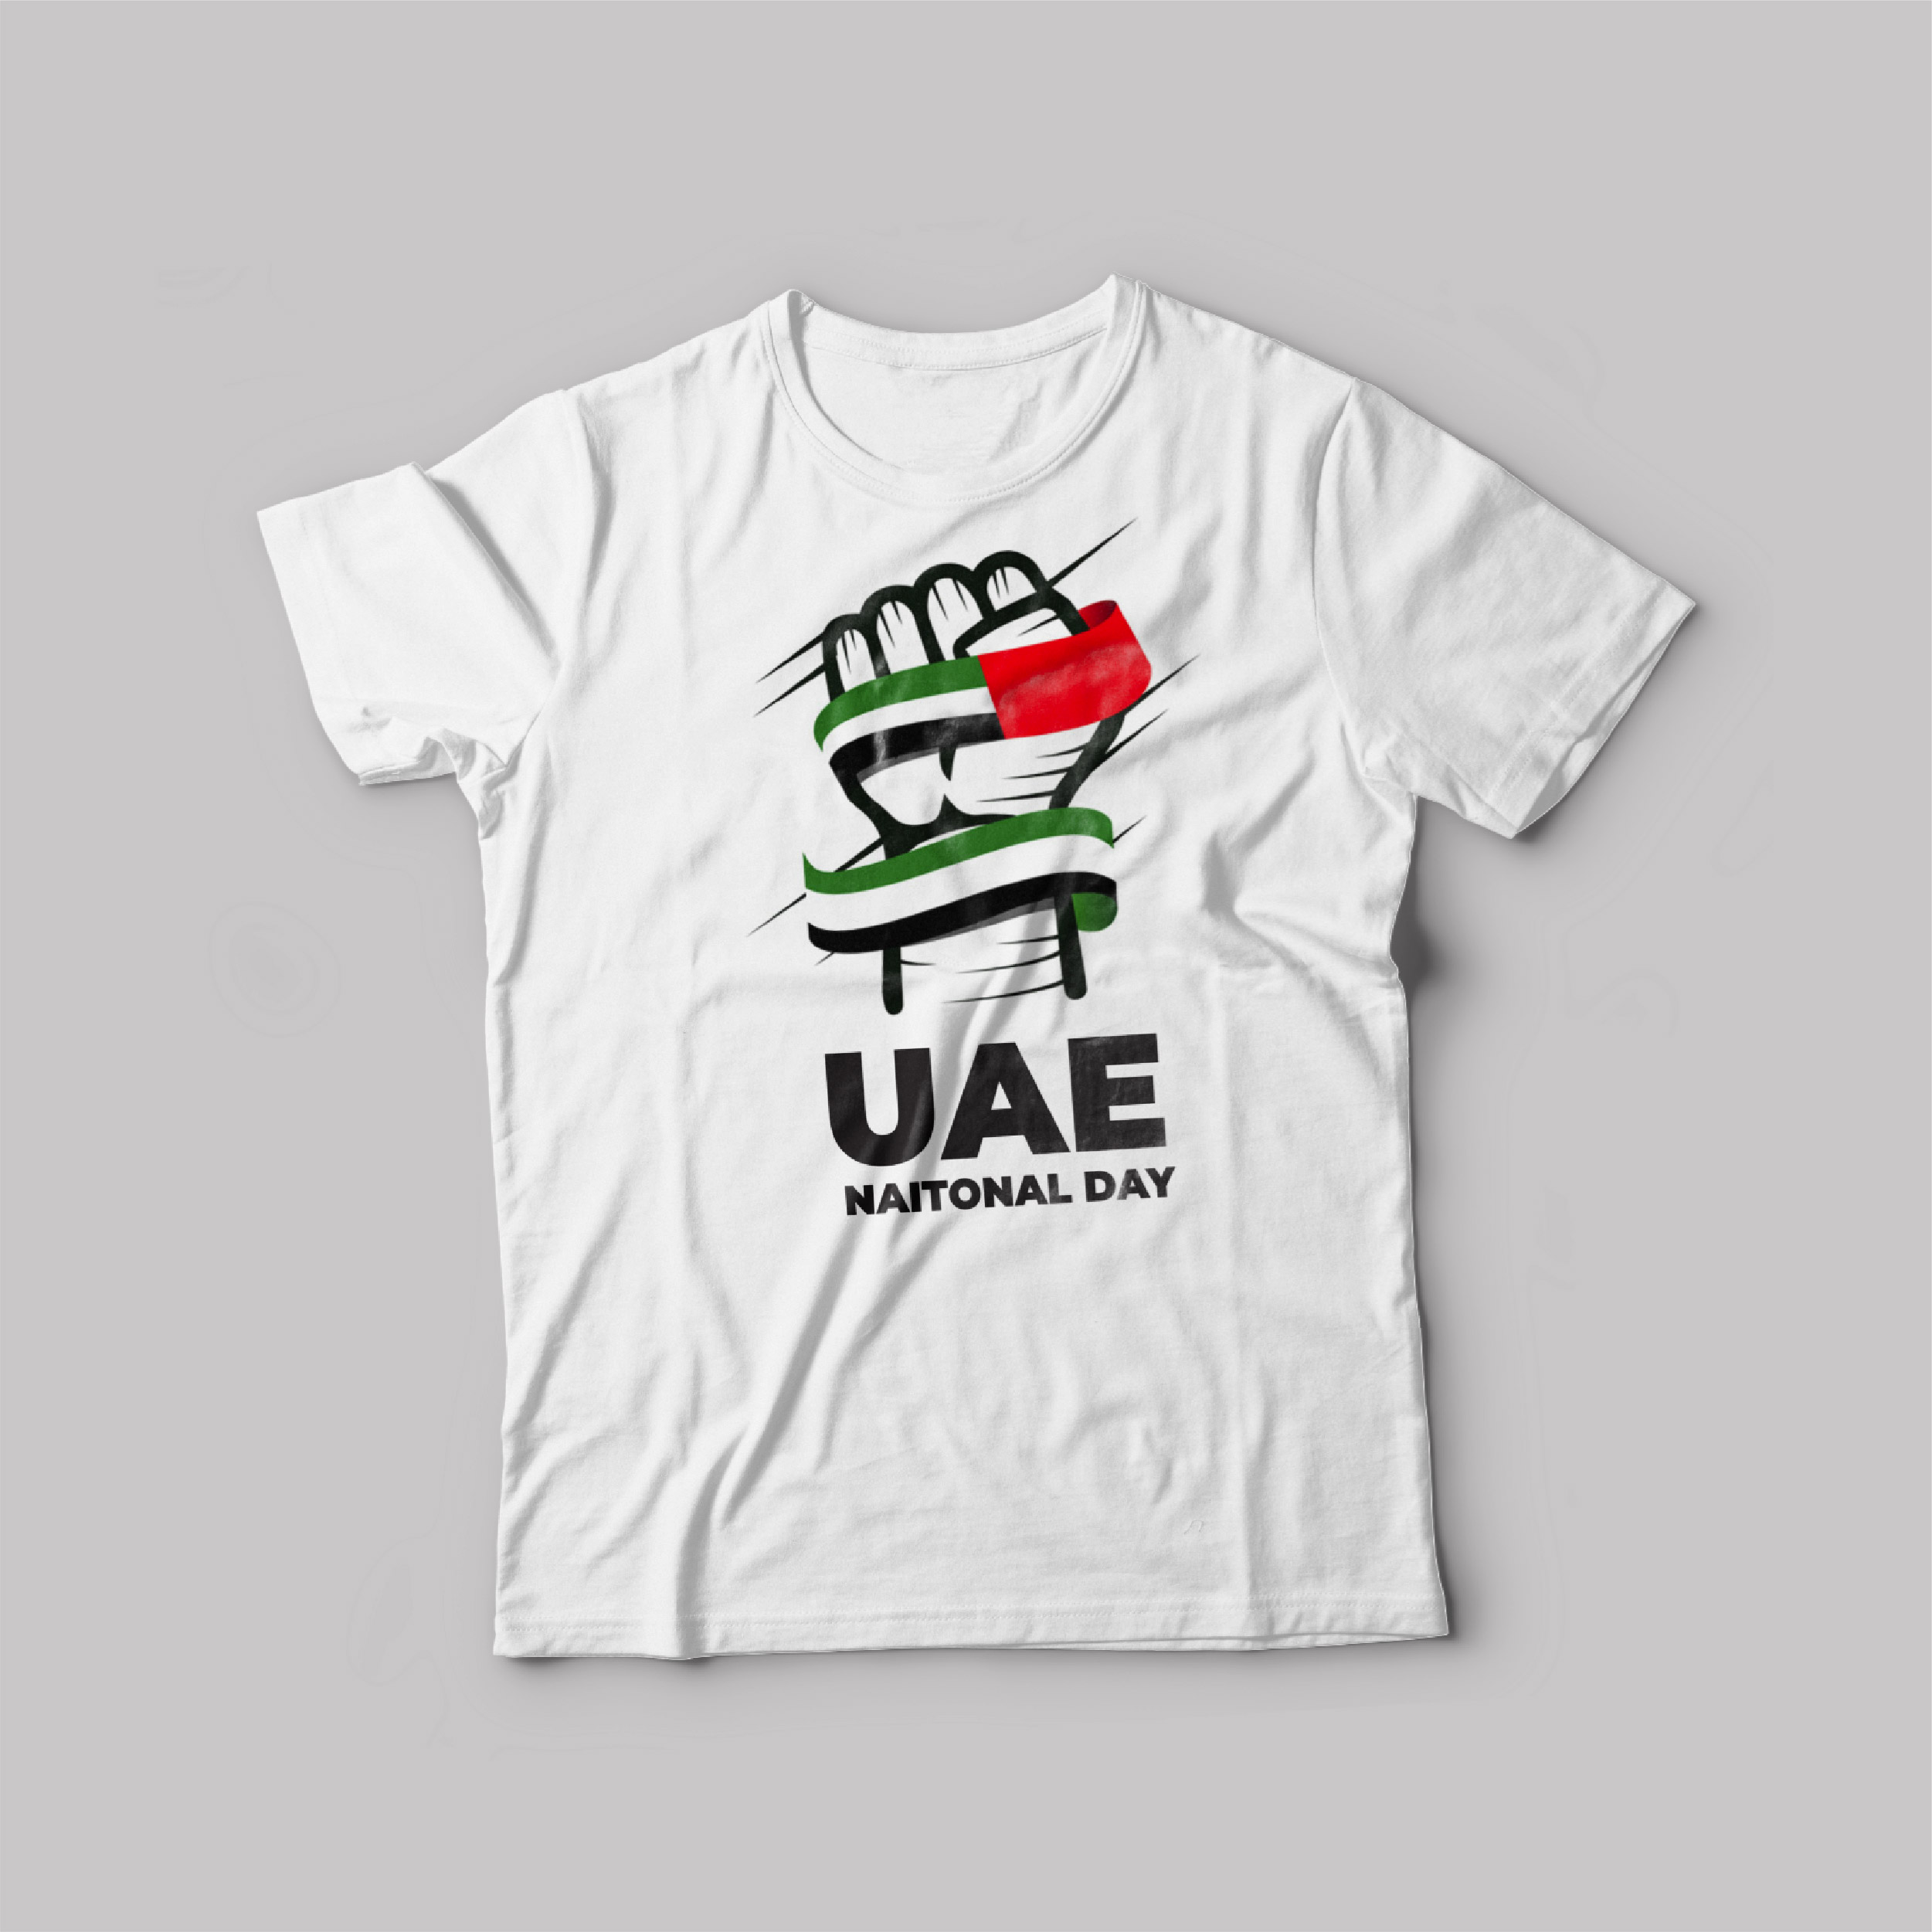 UAE National day T-Shirt White Round Neck For Unisex 50 Years power Punch